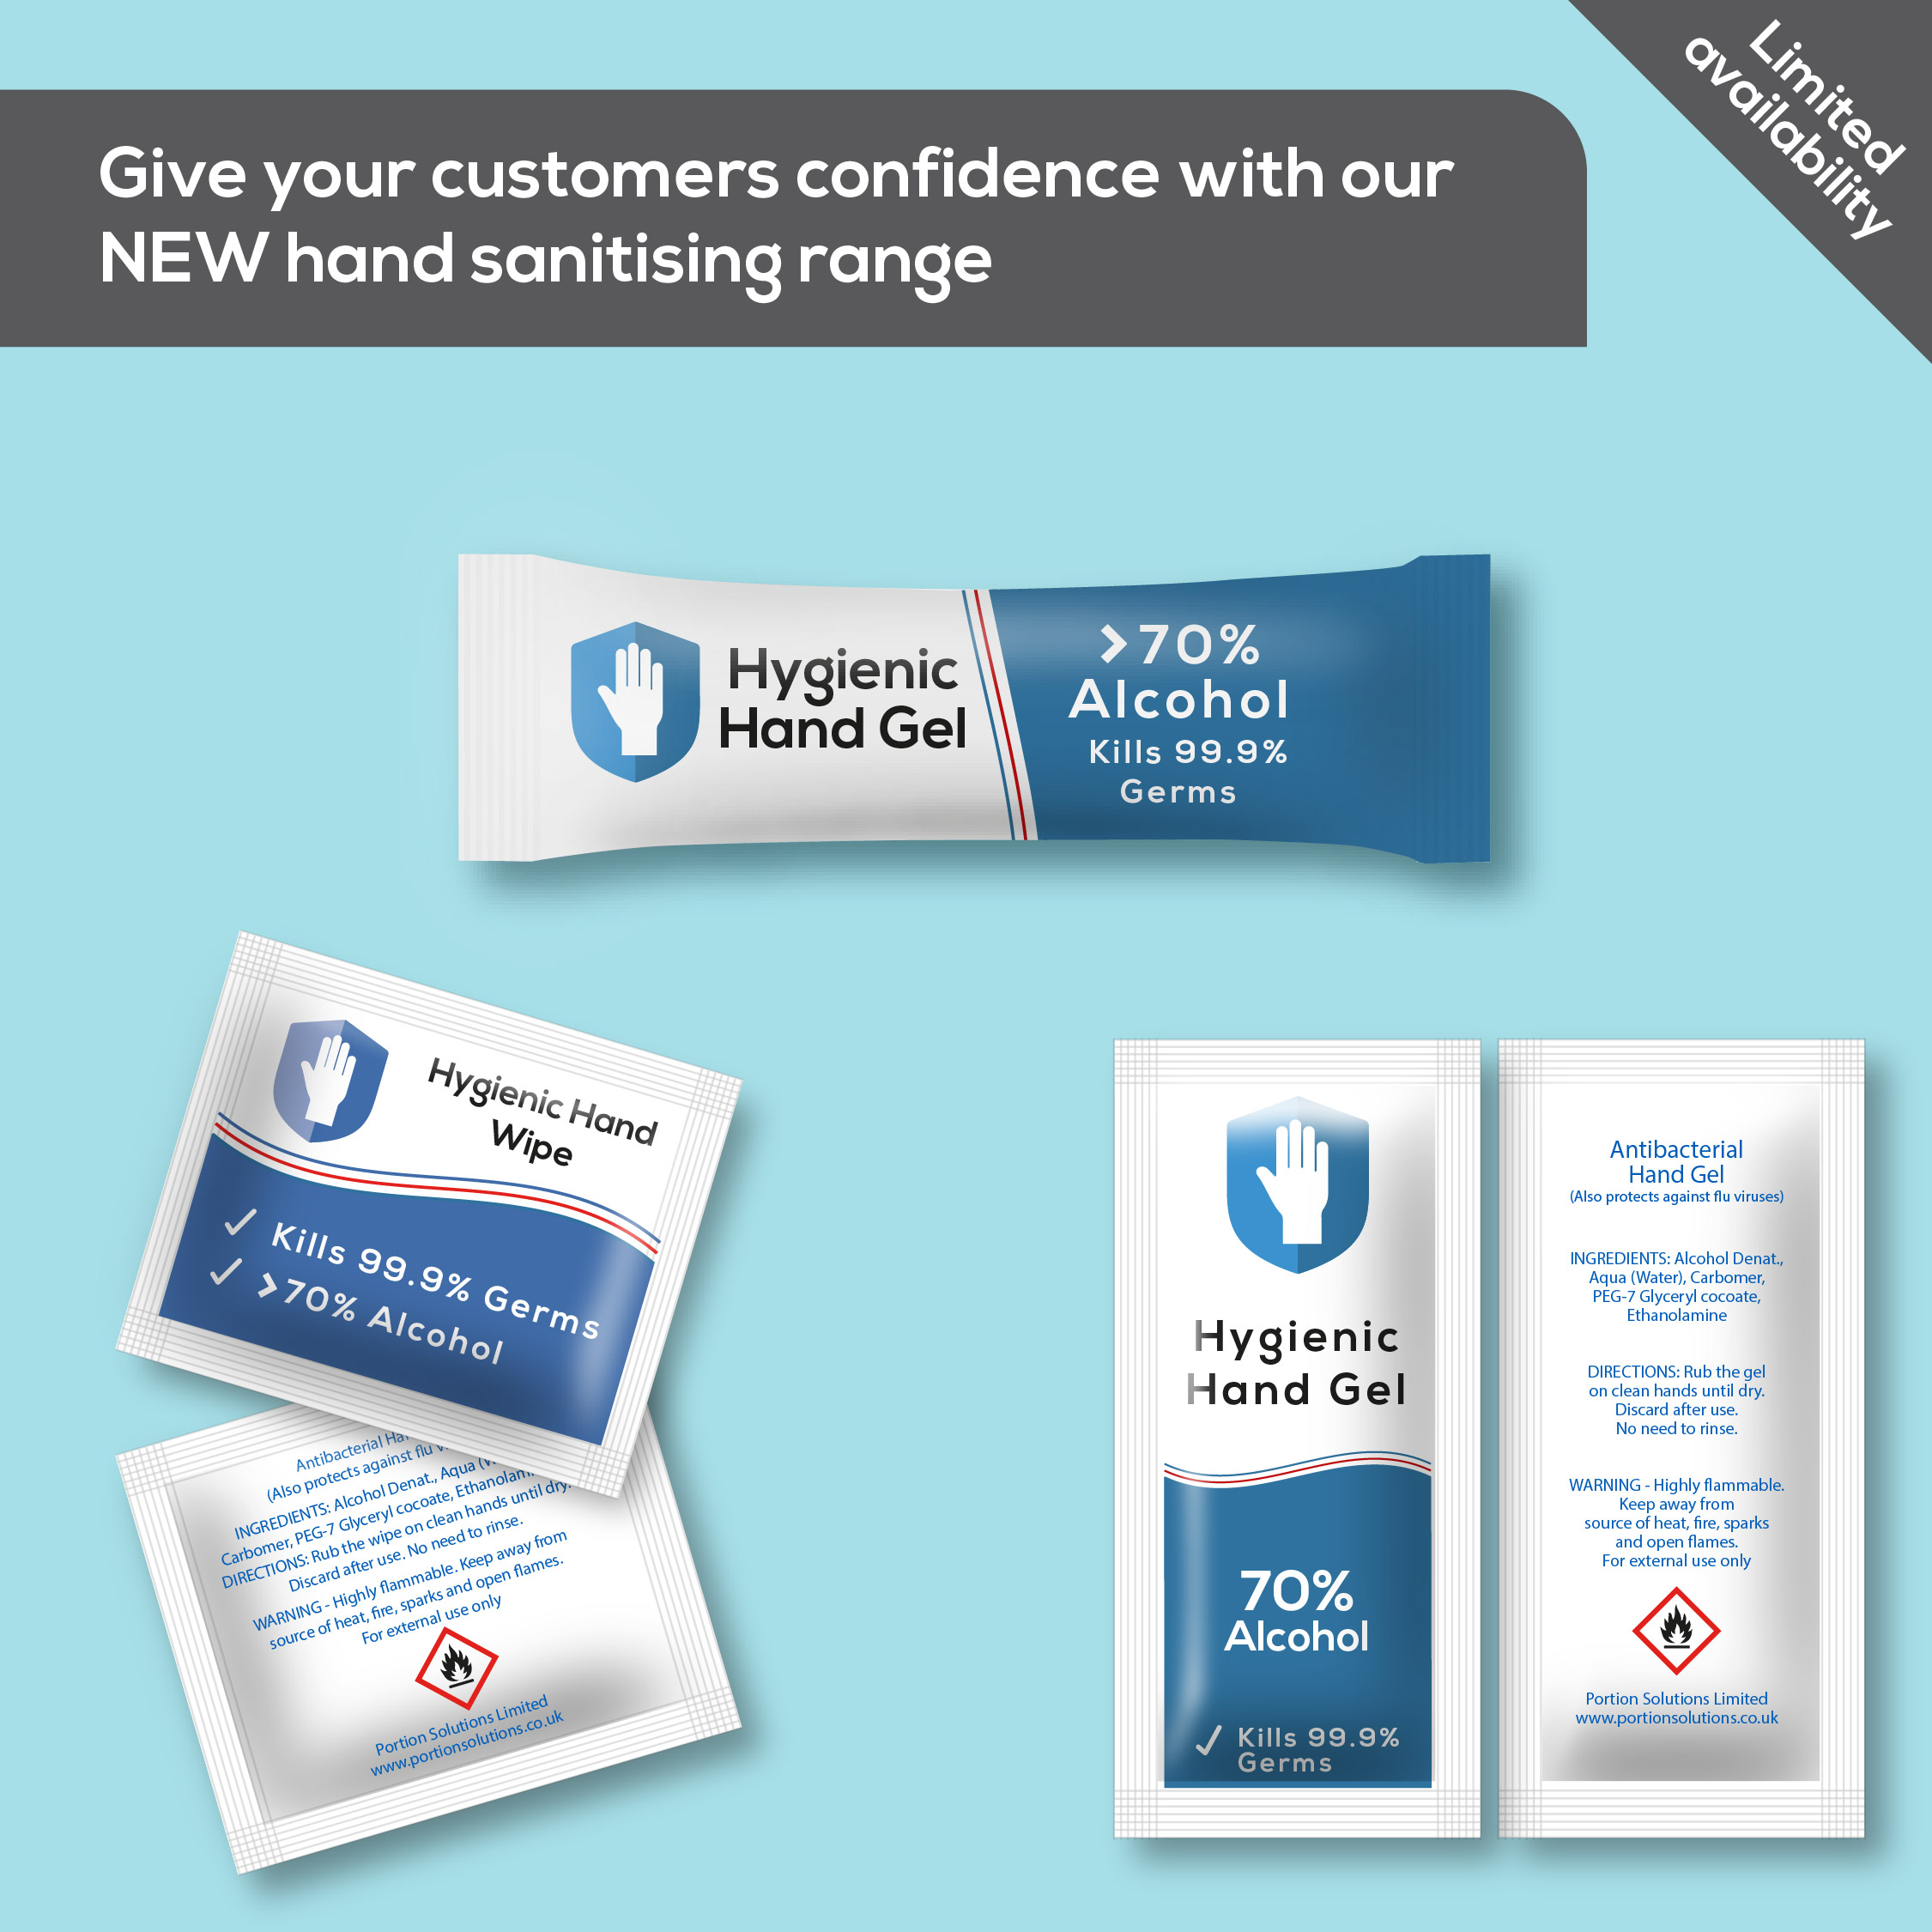 Give your customers confidence with our range of individual hand sanitising sachets